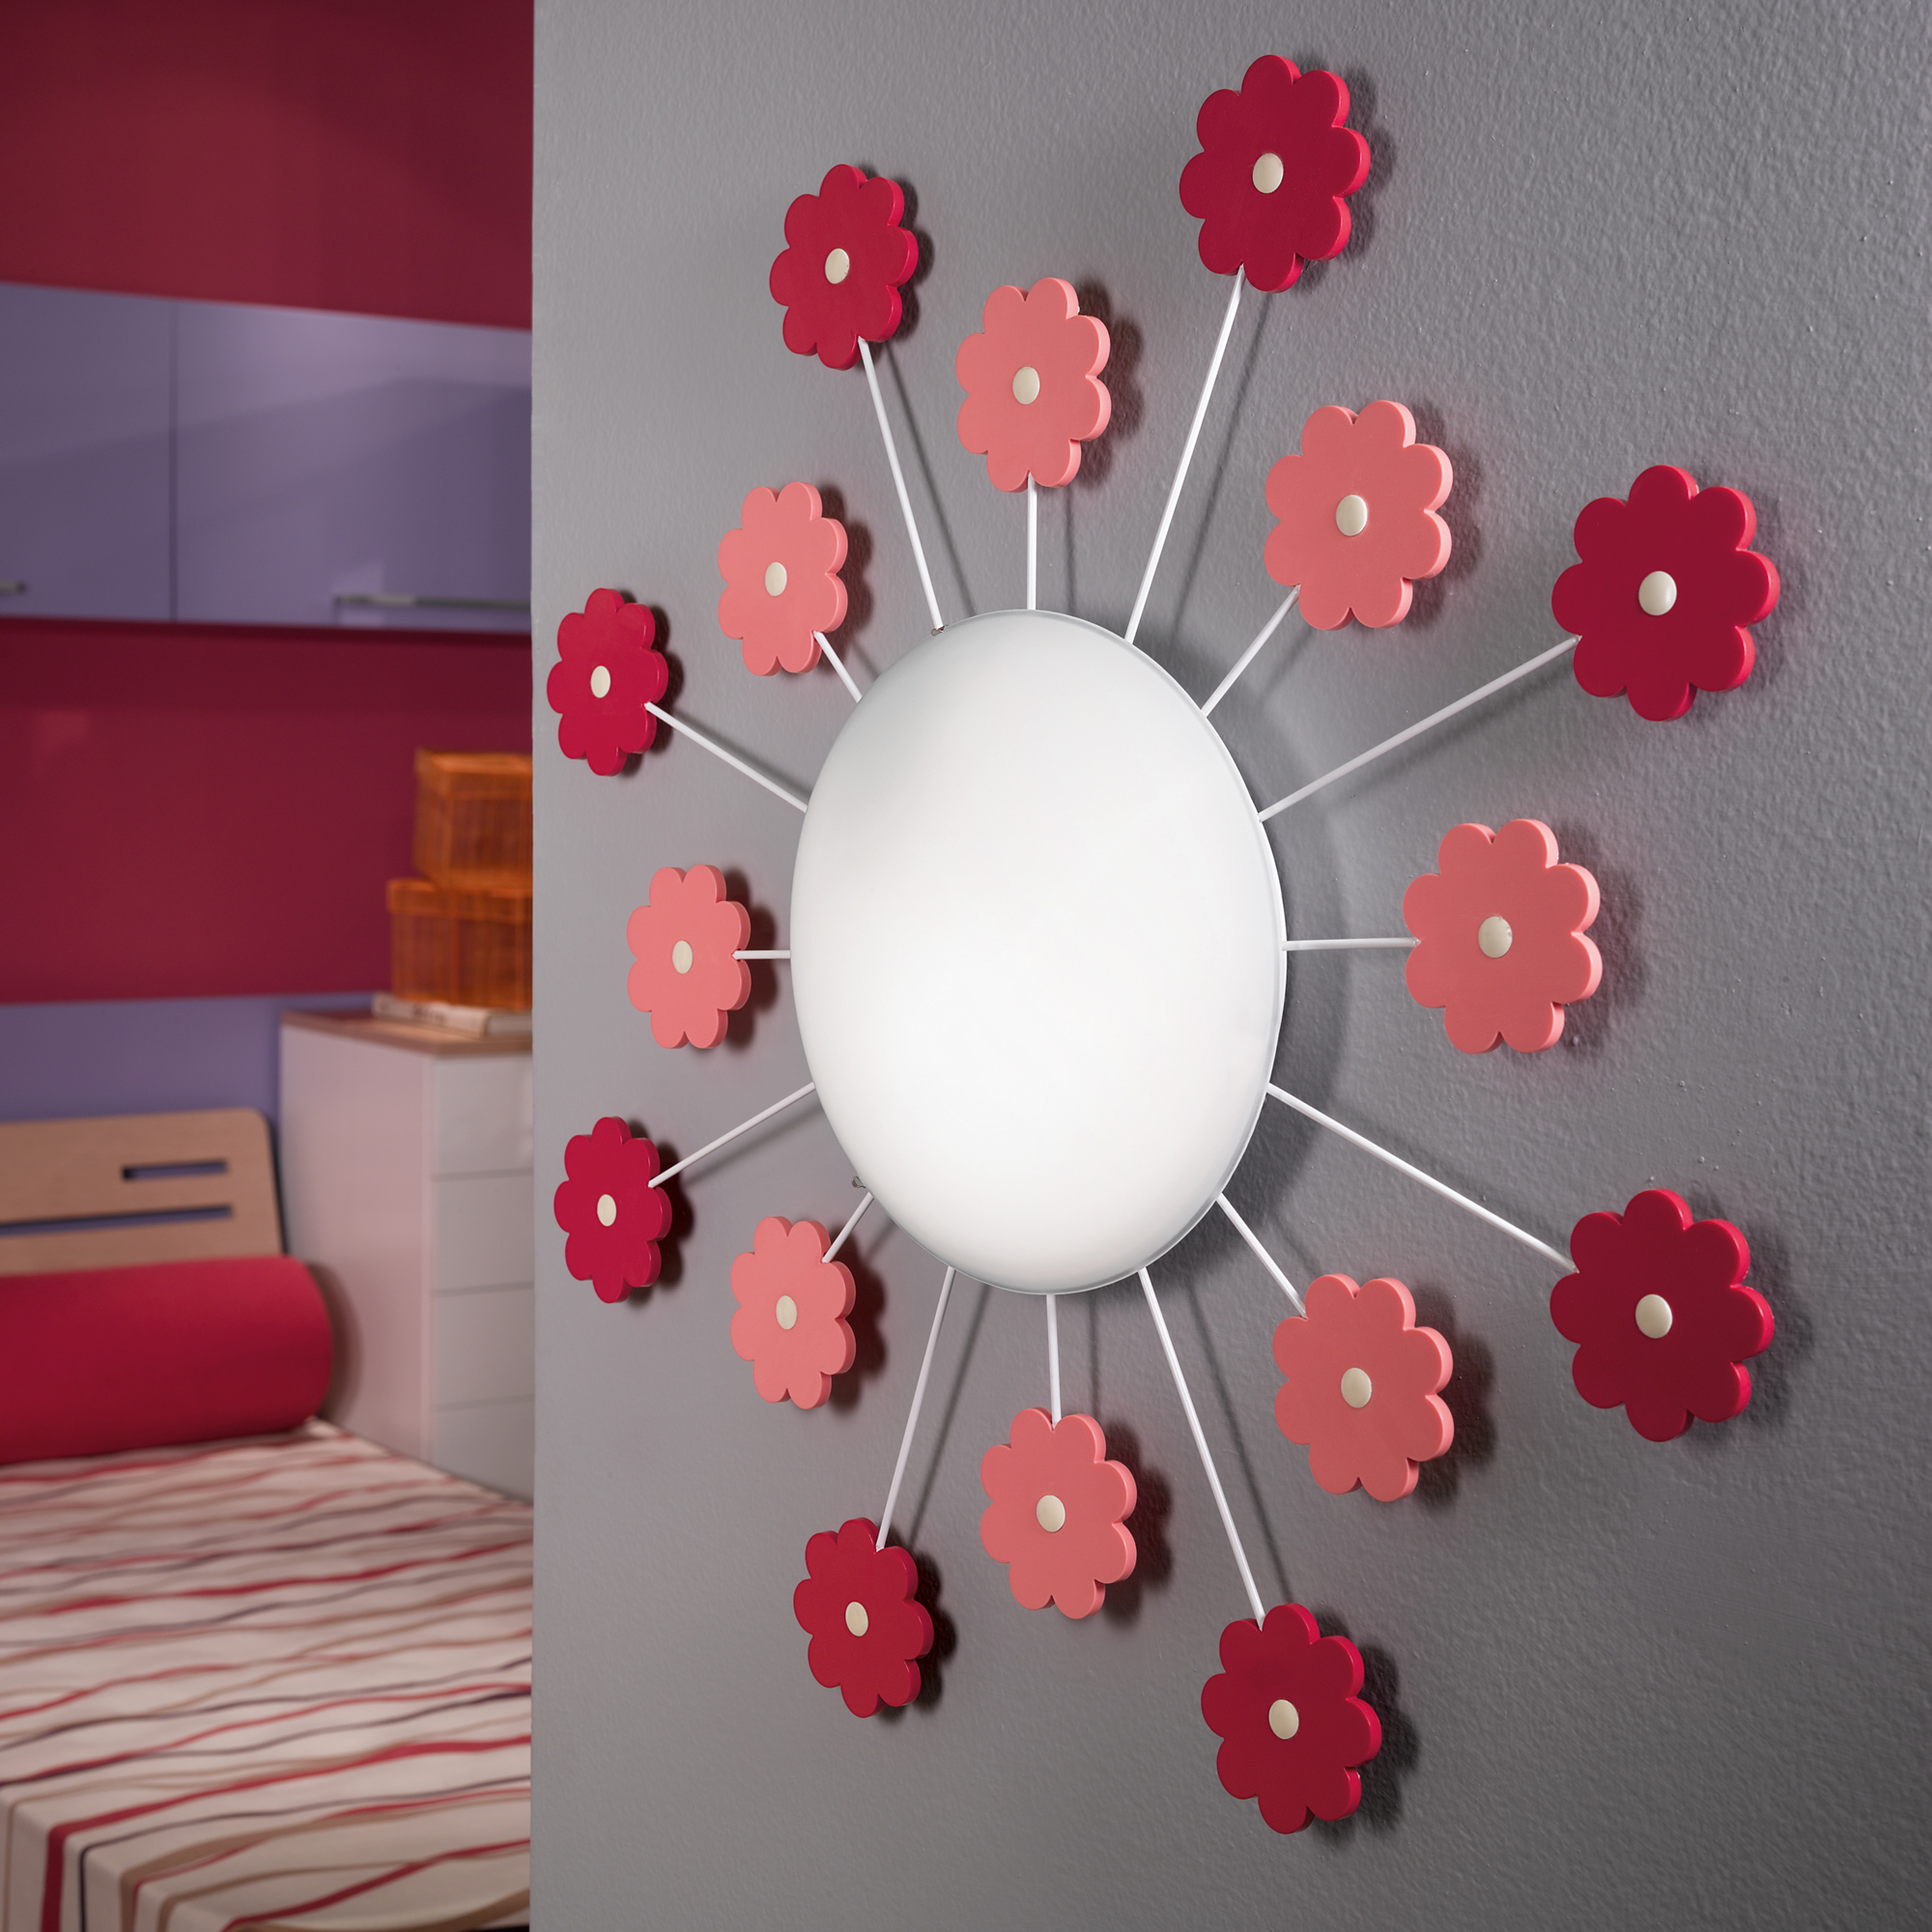 92146 viki 1 interior lighting main collections for Chambre a coucher deuxieme main